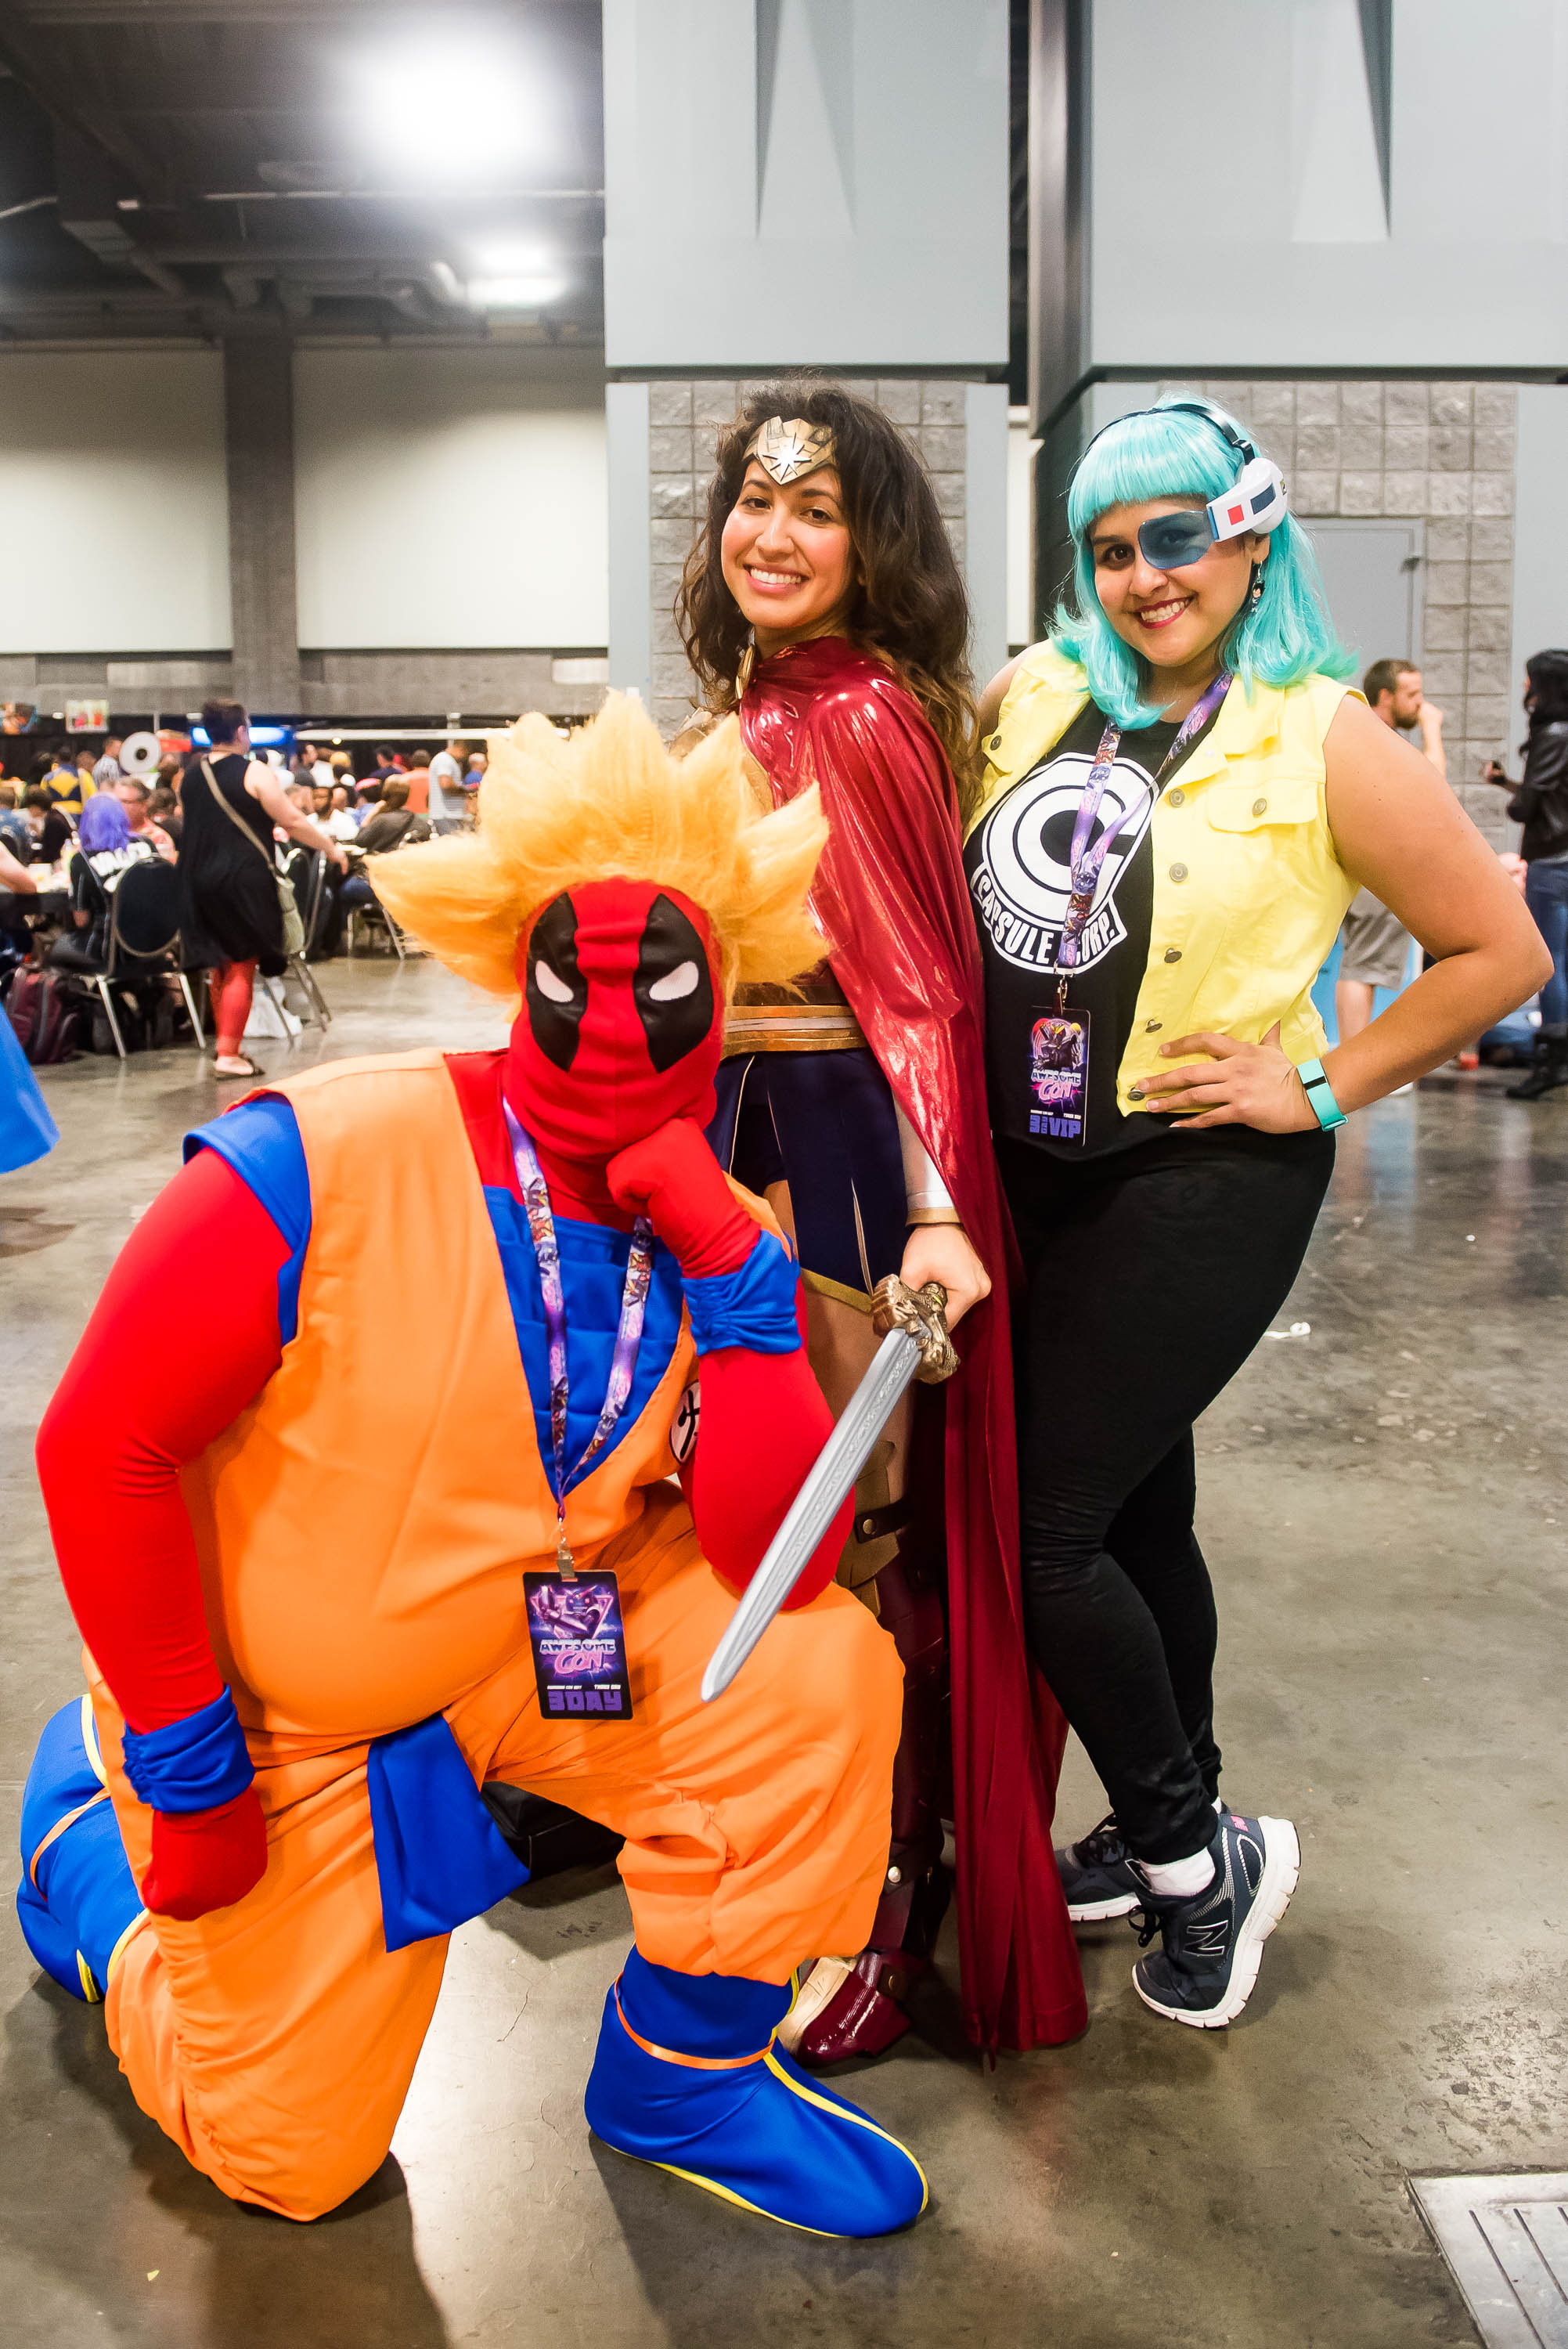 "Day 2 of Awesome Con saw even more superheroes and their superfans as they took over the Convention Center. Guests attended sessions such as ""Love Your Cosplay Body""shopped for more comic paraphernalia from the vendors and waited   in line for autographs from their favorite characters. We heard there was even a secret wedding between Deadpool and Wonder Woman! (Image: Joy Asico/www.asicophoto.com)"